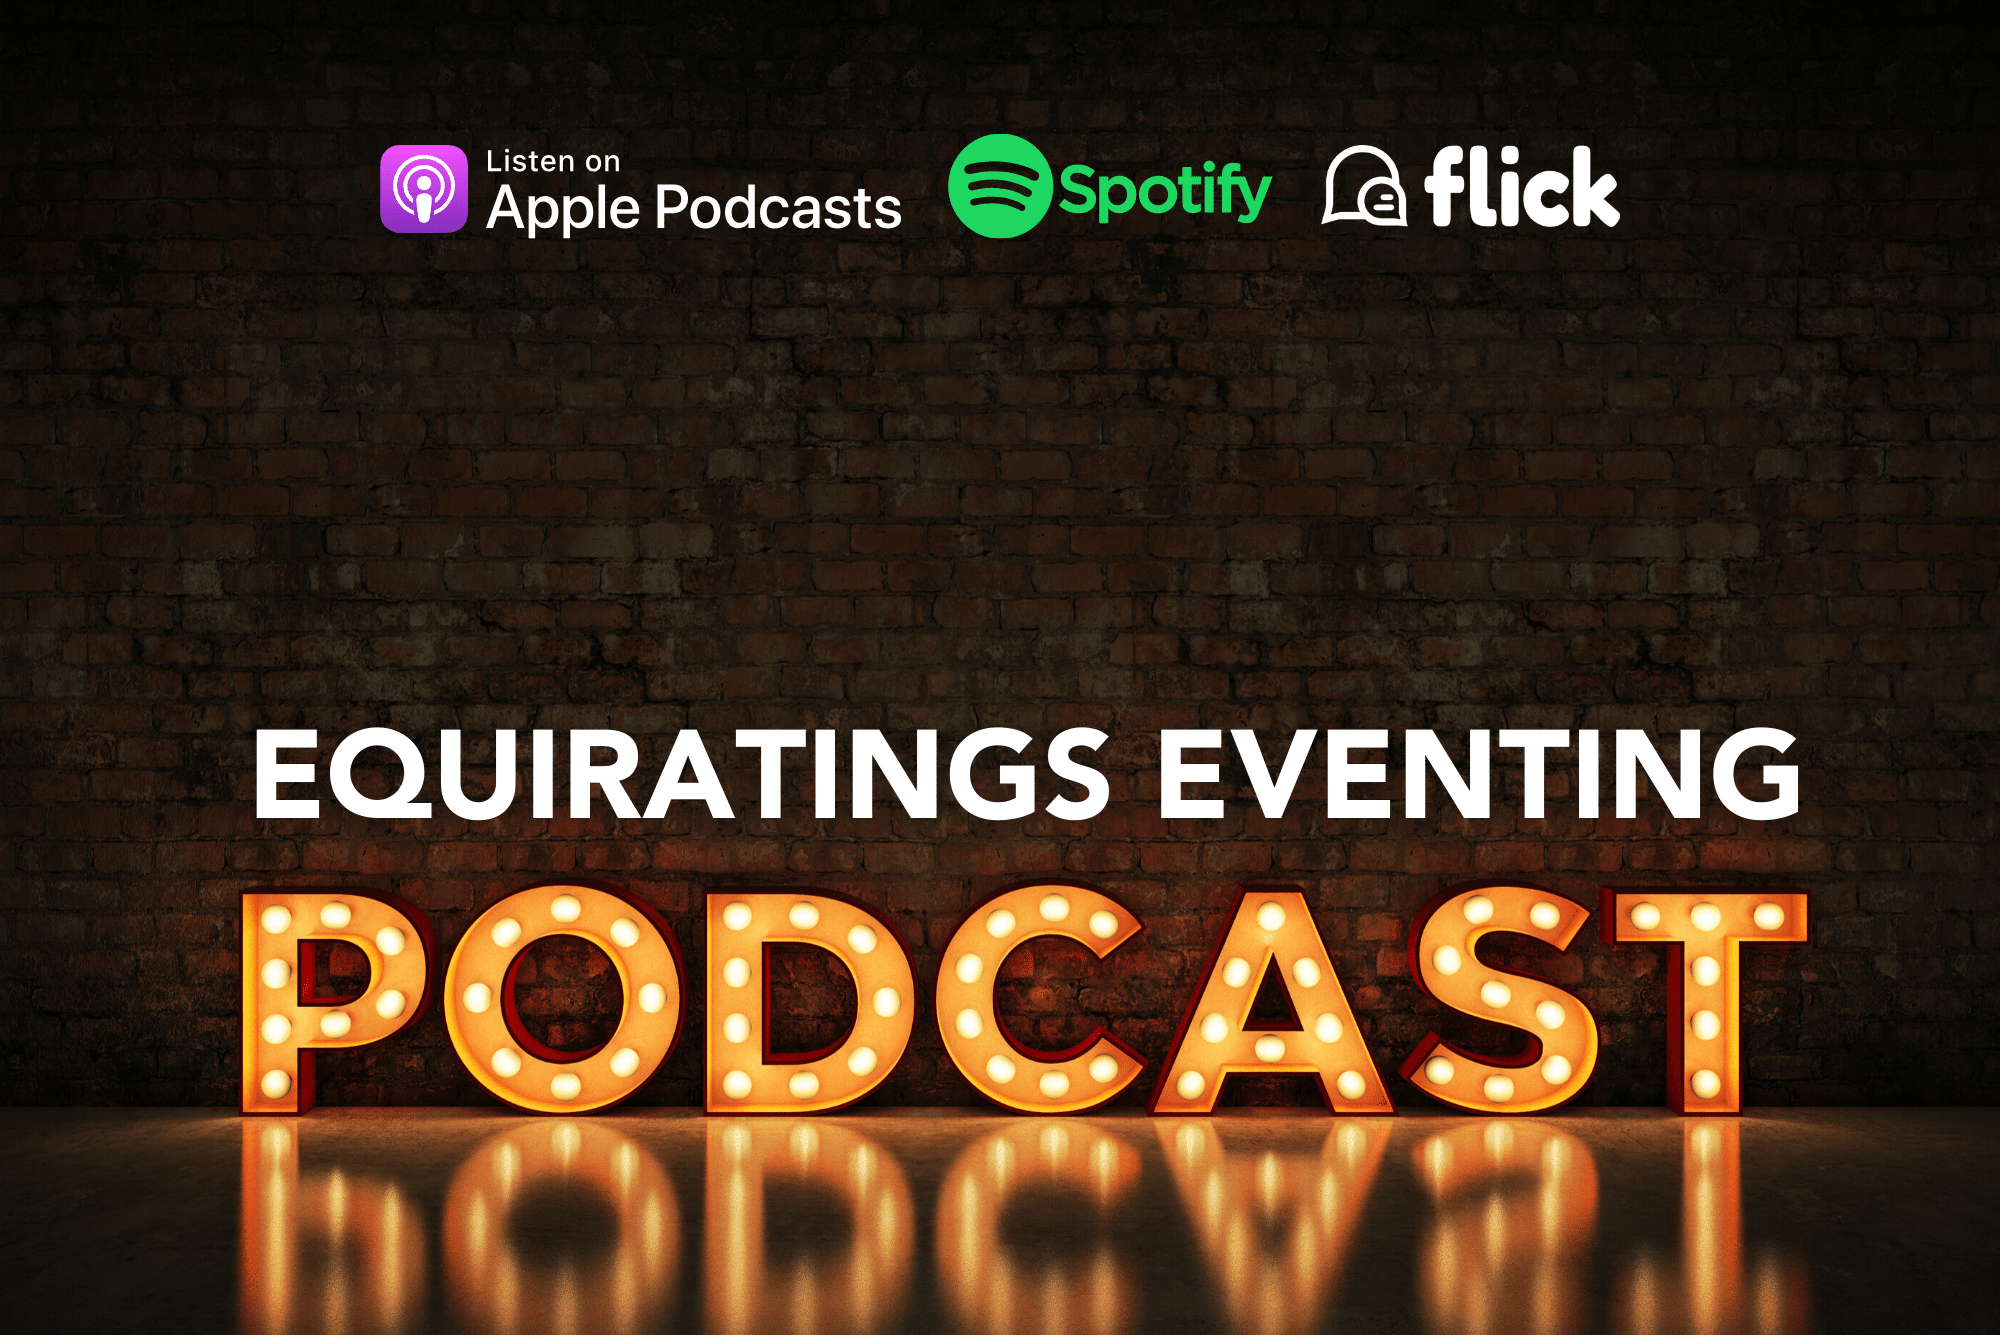 EquiRatings Eventing Podcast